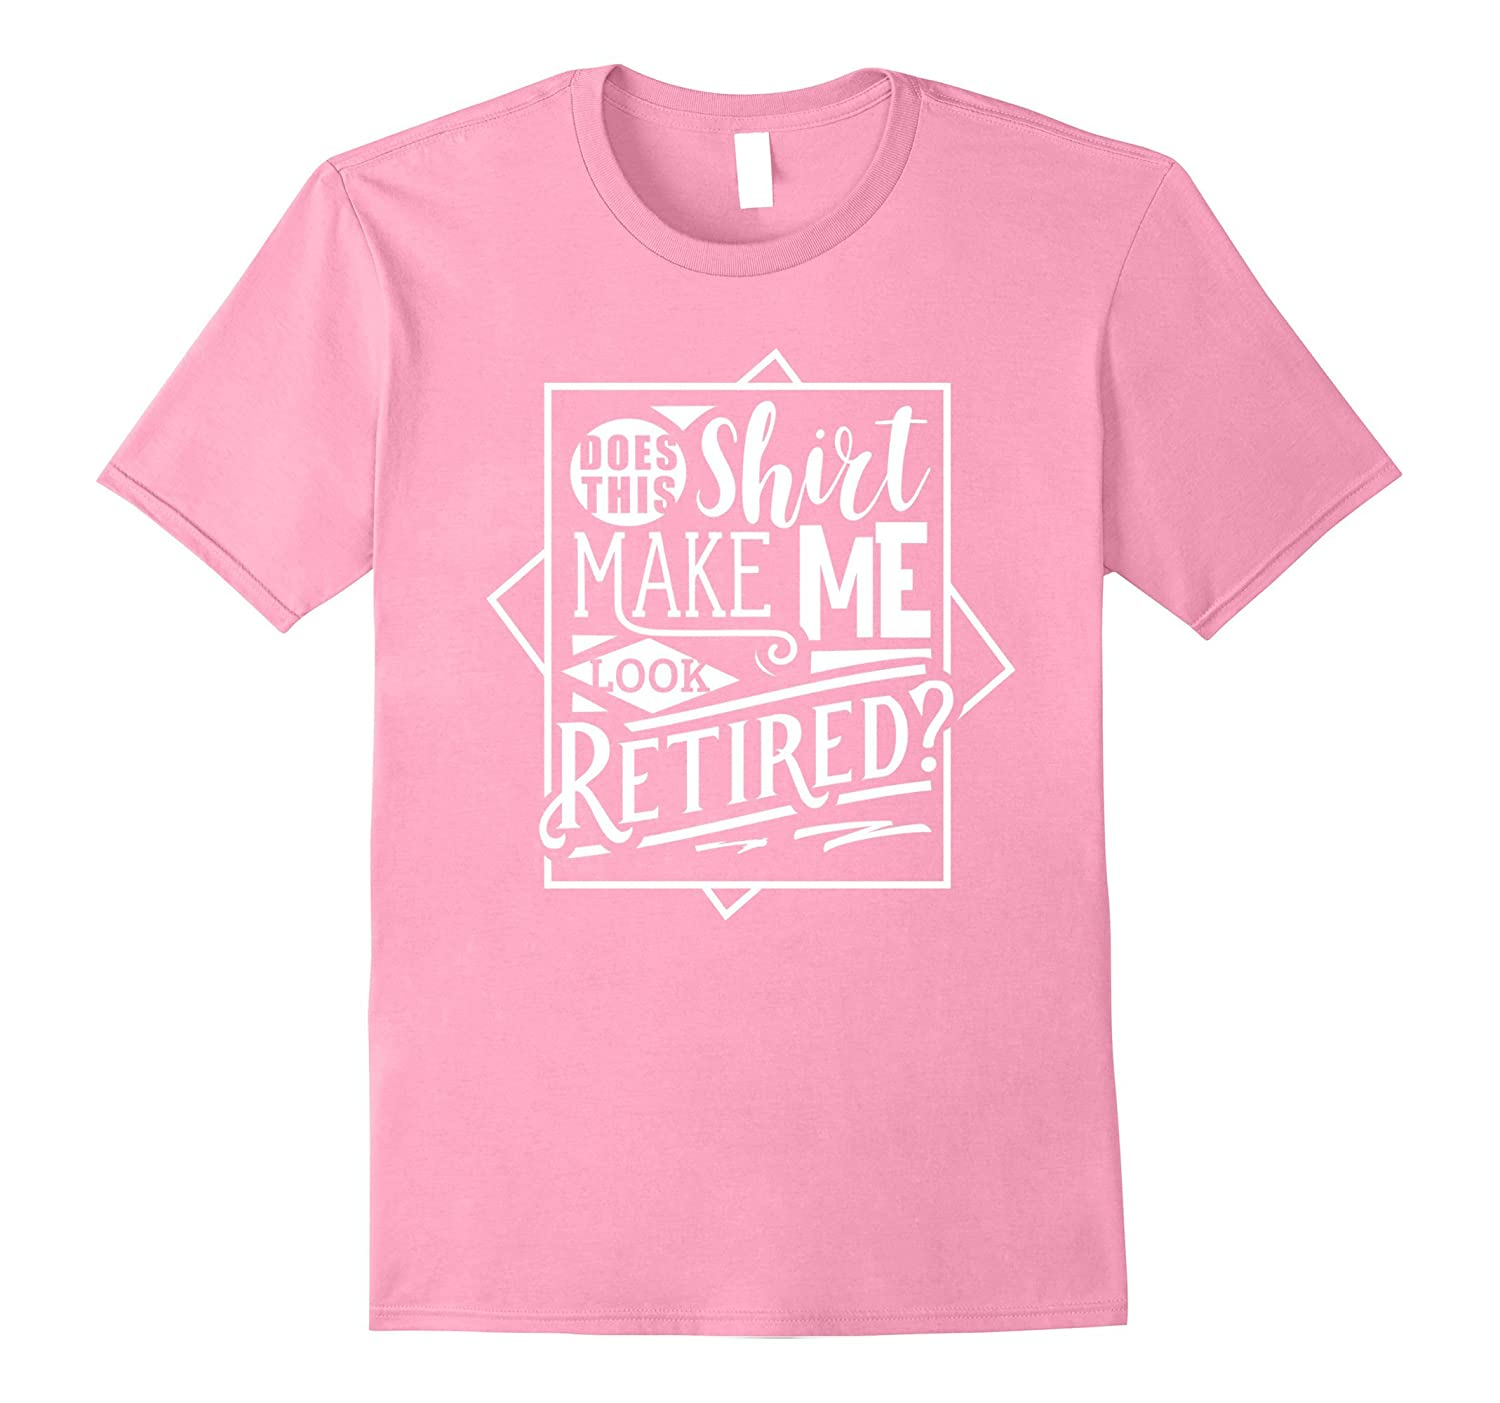 9a3a68e8 Does This Shirt Make Me Look Retired? Shirt Funny Retirement-RT ...